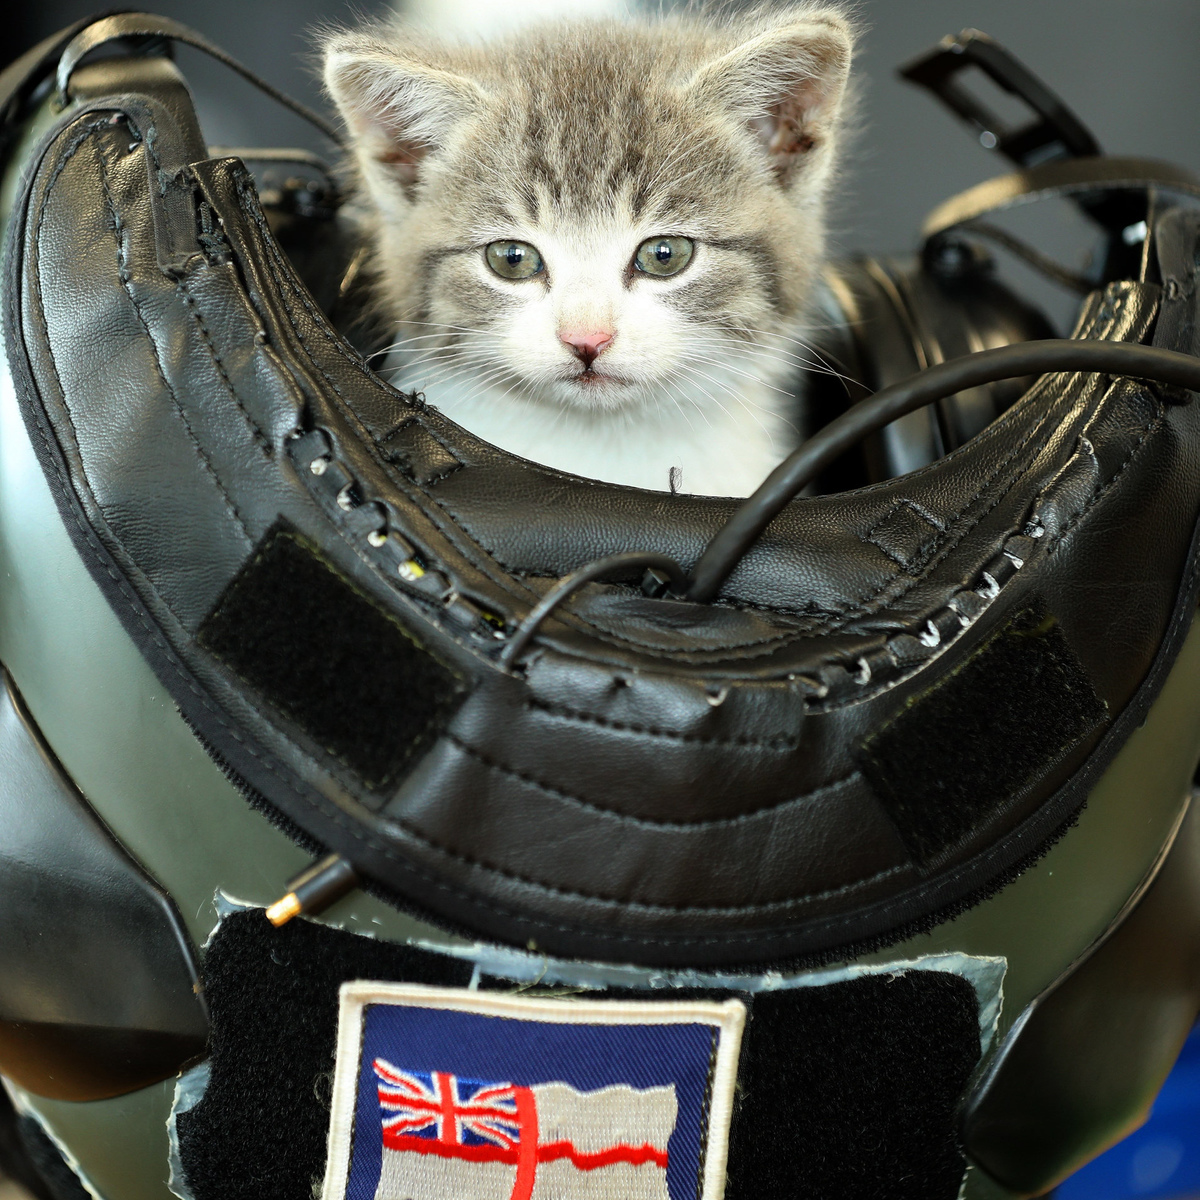 Internet Falls In Love With Pilot Who Saved Kitten After 300 Mile Ordeal SWNS LUCKY KITTEN 07